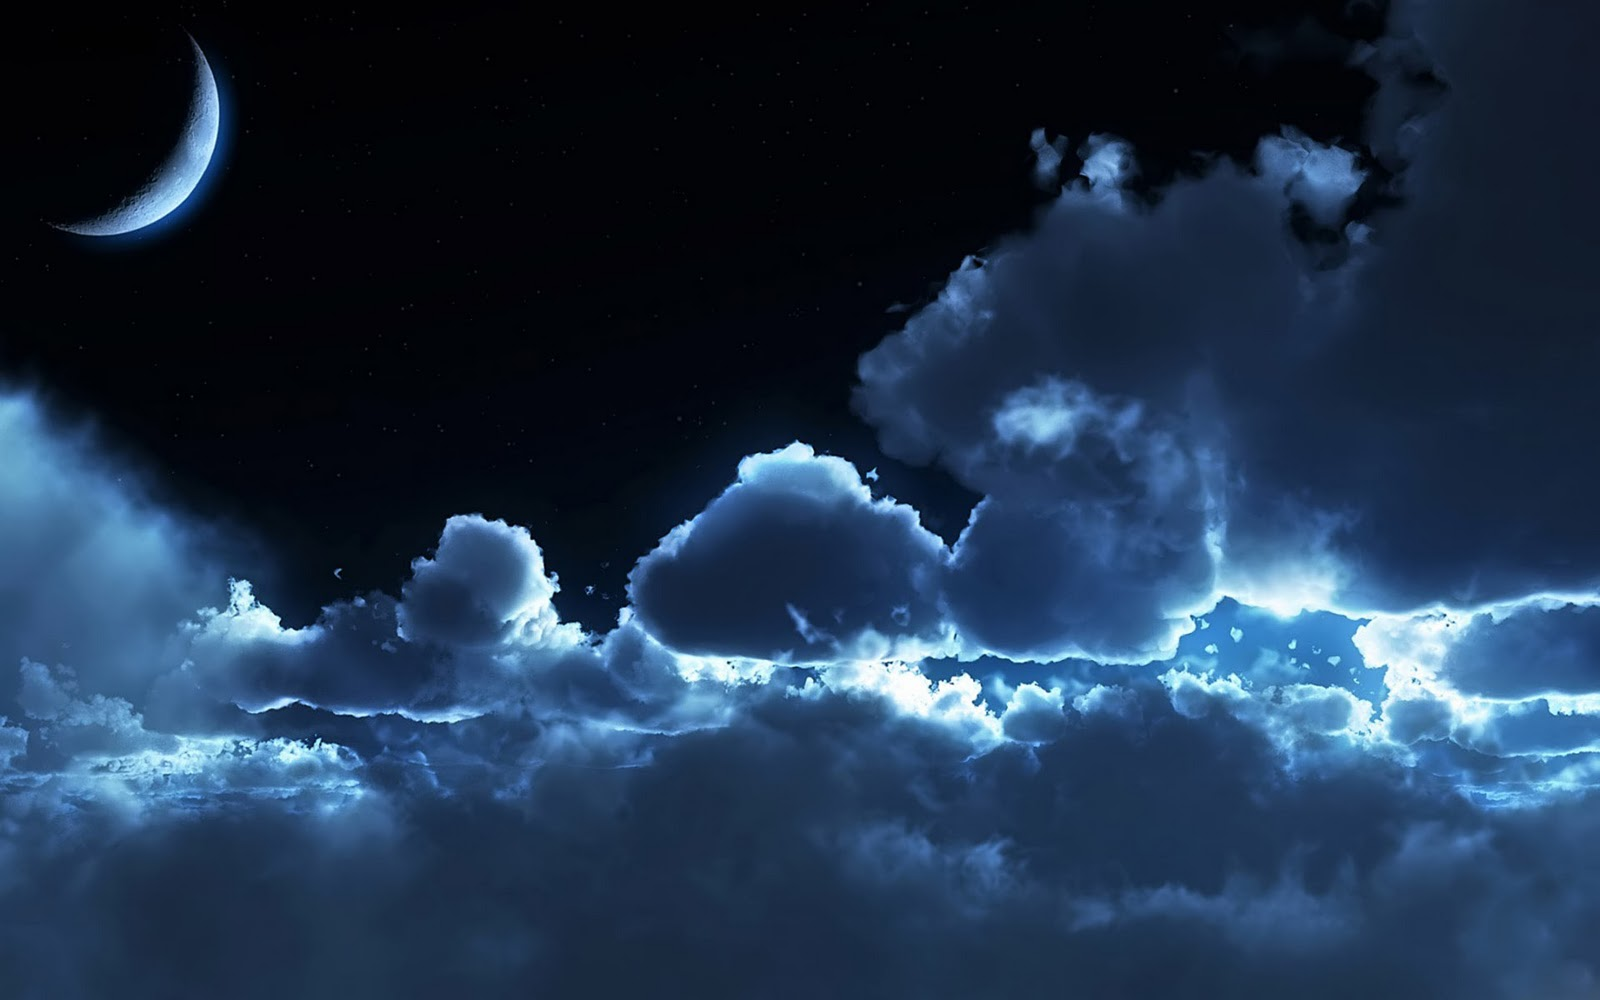 http://2.bp.blogspot.com/-FxWrjZnakZk/TWaYvmMb5iI/AAAAAAAABK0/duwMh29VtVo/s1600/New_moon_free_windows_7_wallpaper.jpg